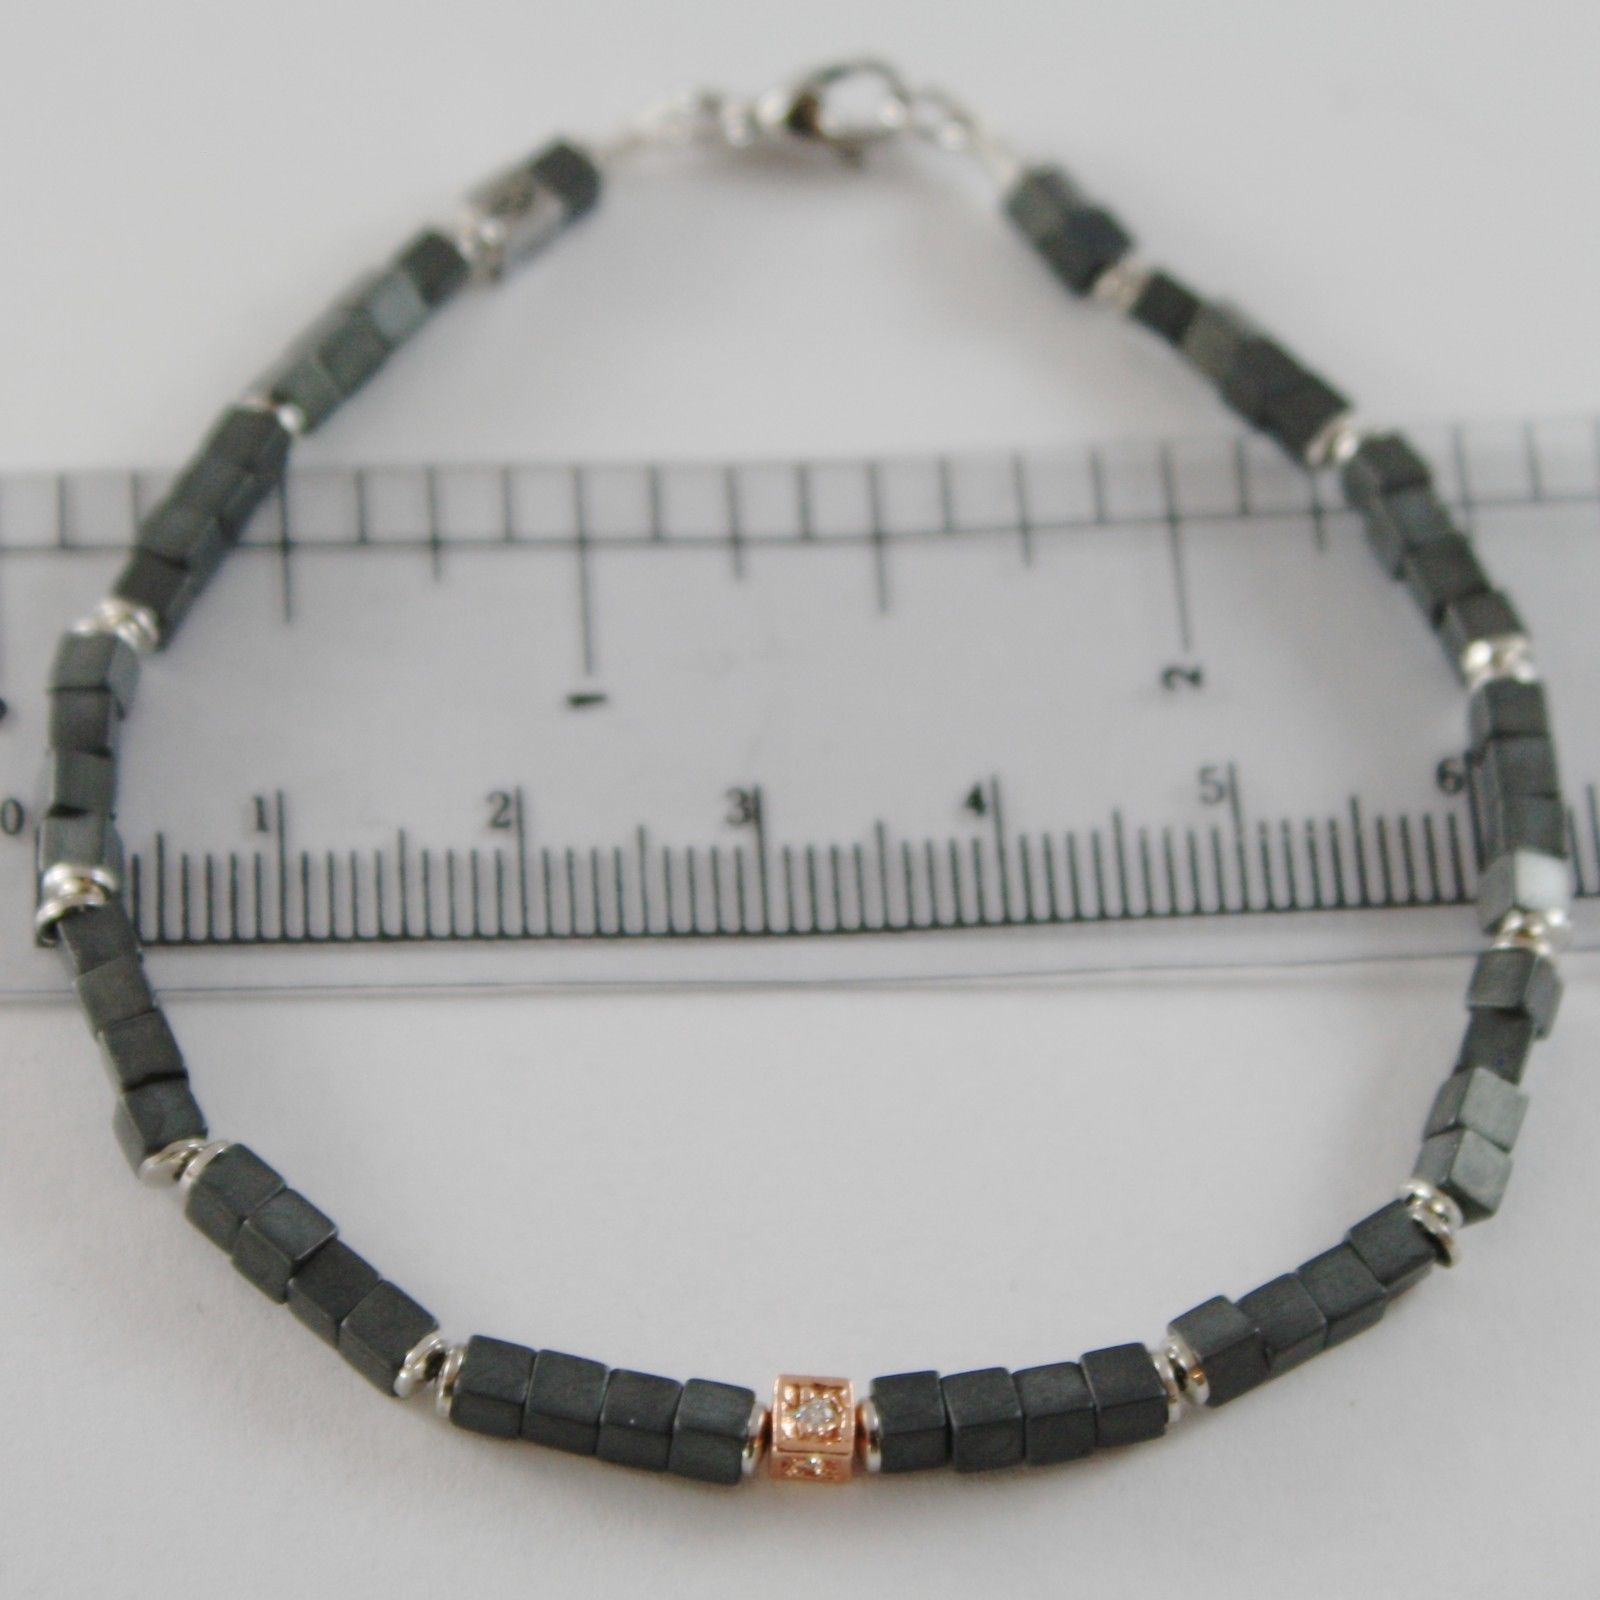 BRACELET GIADAN 925 SILVER HEMATITE OPAQUE AND 4 DIAMONDS WHITE MADE IN ITALY